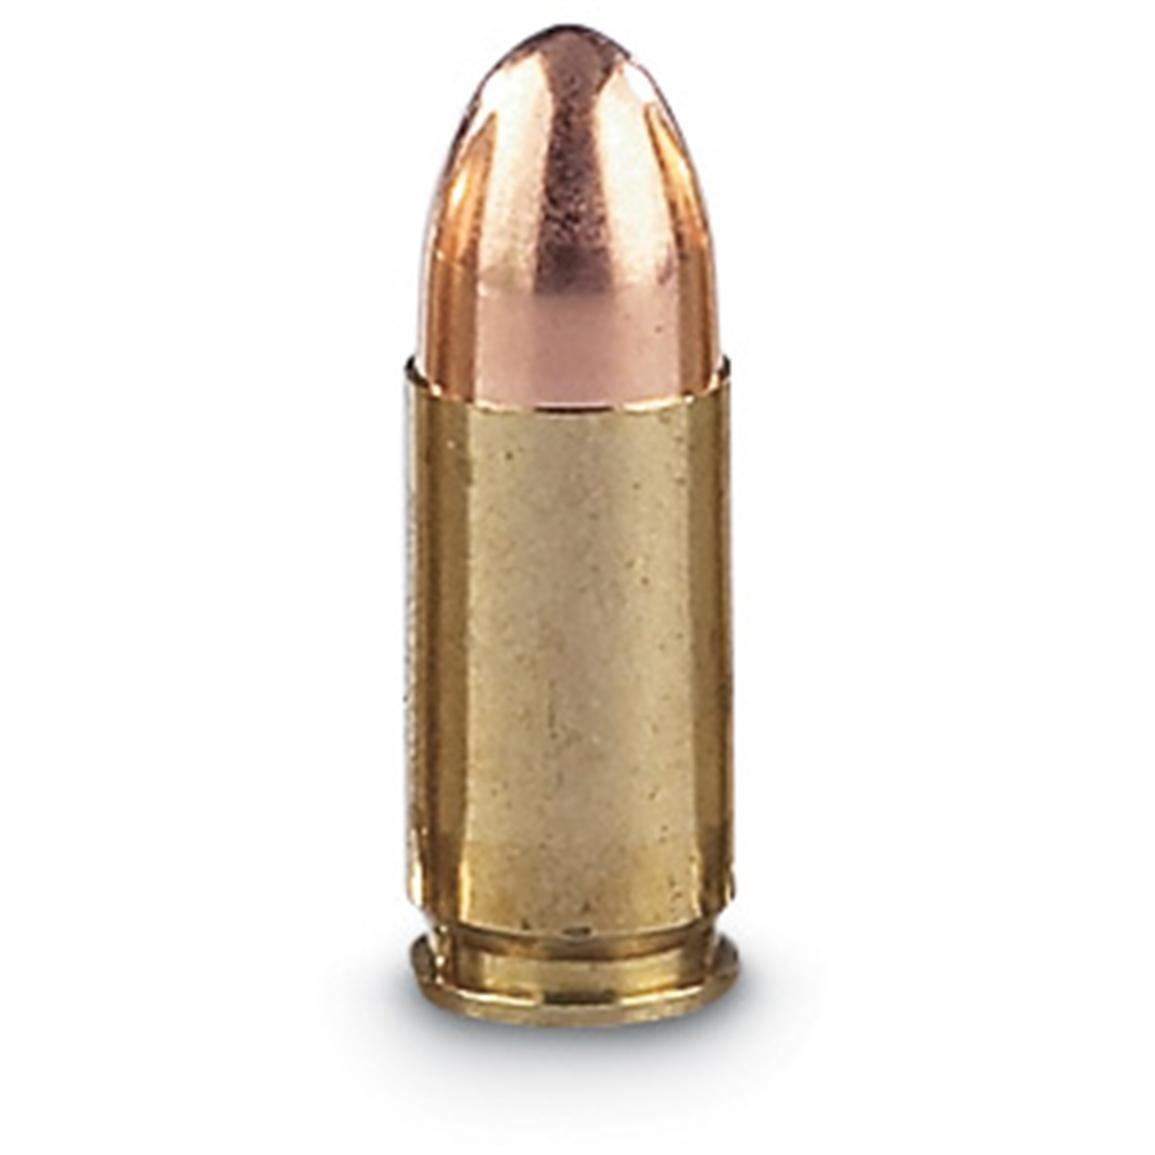 Boxer-primed and fully reloadable, brass-cased. Full metal jacket bullet